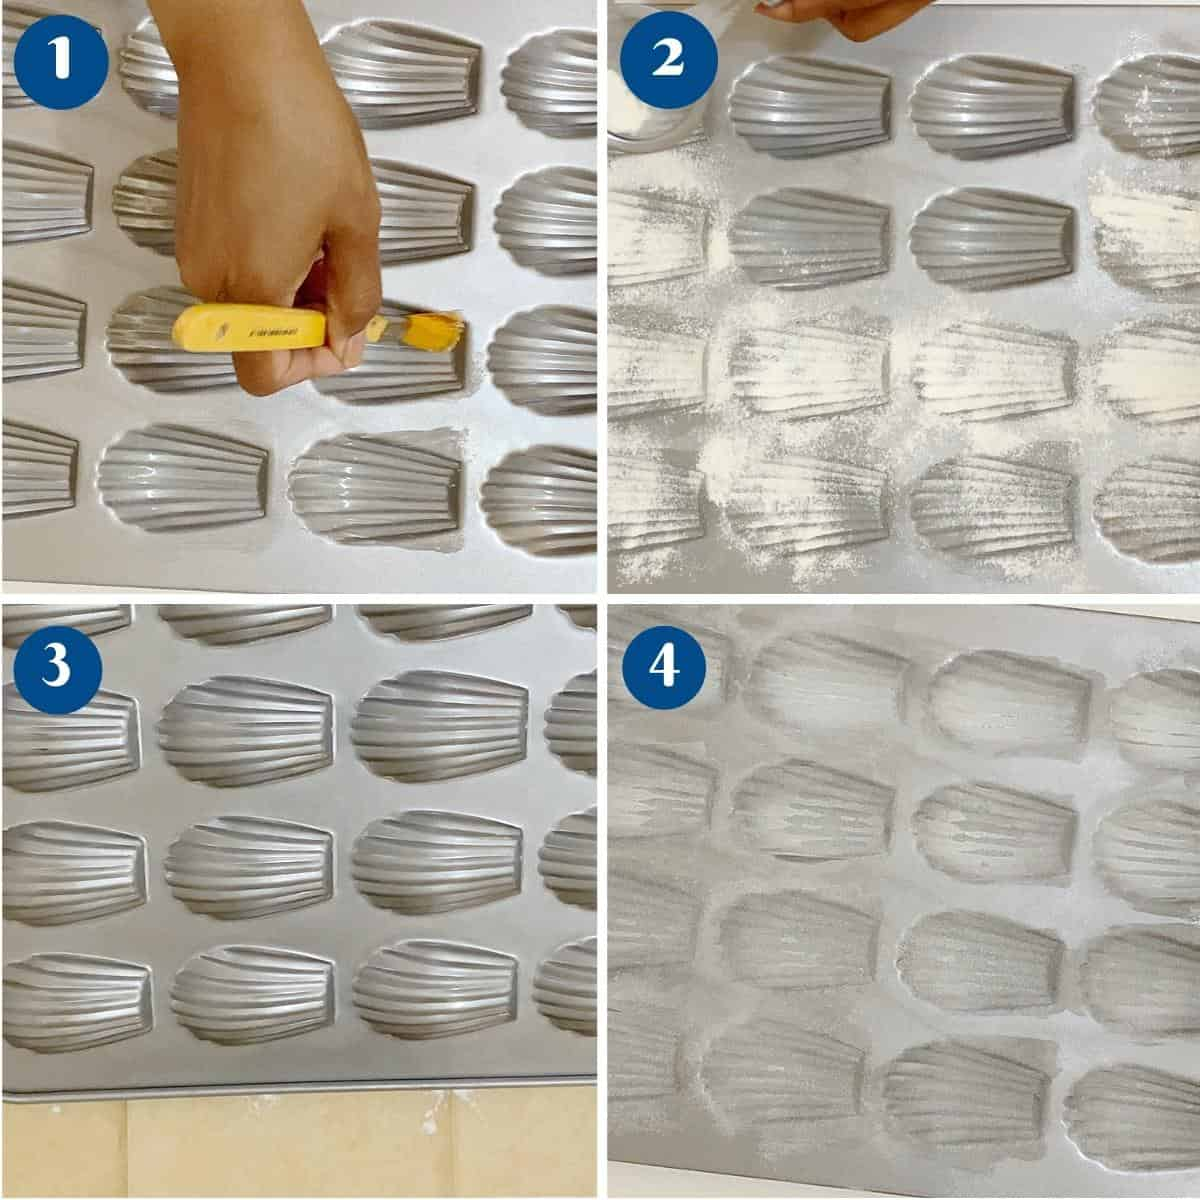 Progress pictures preparing the madeleine shell shaped pan.